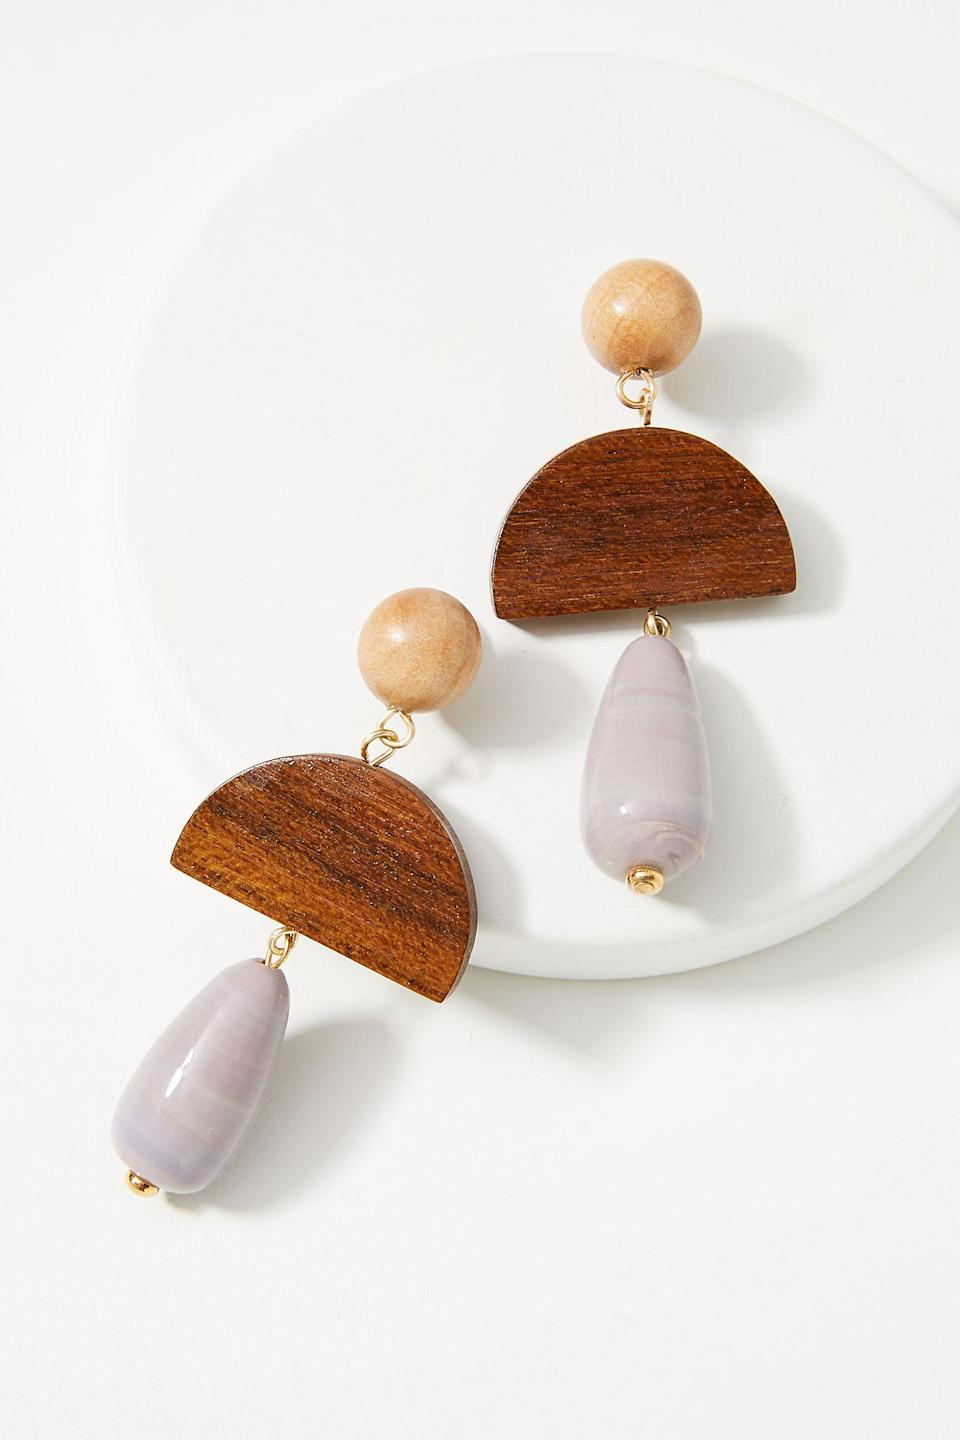 """<br><br><strong>Sophie Monet</strong> Rae Drop Earrings, $, available at <a href=""""https://go.skimresources.com/?id=30283X879131&url=https%3A%2F%2Fwww.anthropologie.com%2Fshop%2Fsophie-monet-rae-drop-earrings"""" rel=""""nofollow noopener"""" target=""""_blank"""" data-ylk=""""slk:Anthropologie"""" class=""""link rapid-noclick-resp"""">Anthropologie</a>"""